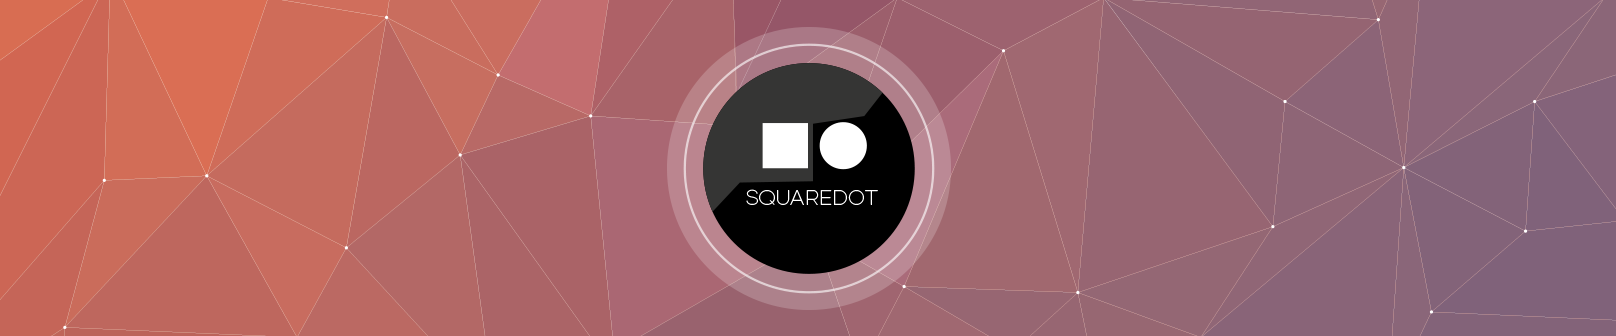 Squaredot Inbound Marketing Agency Logo